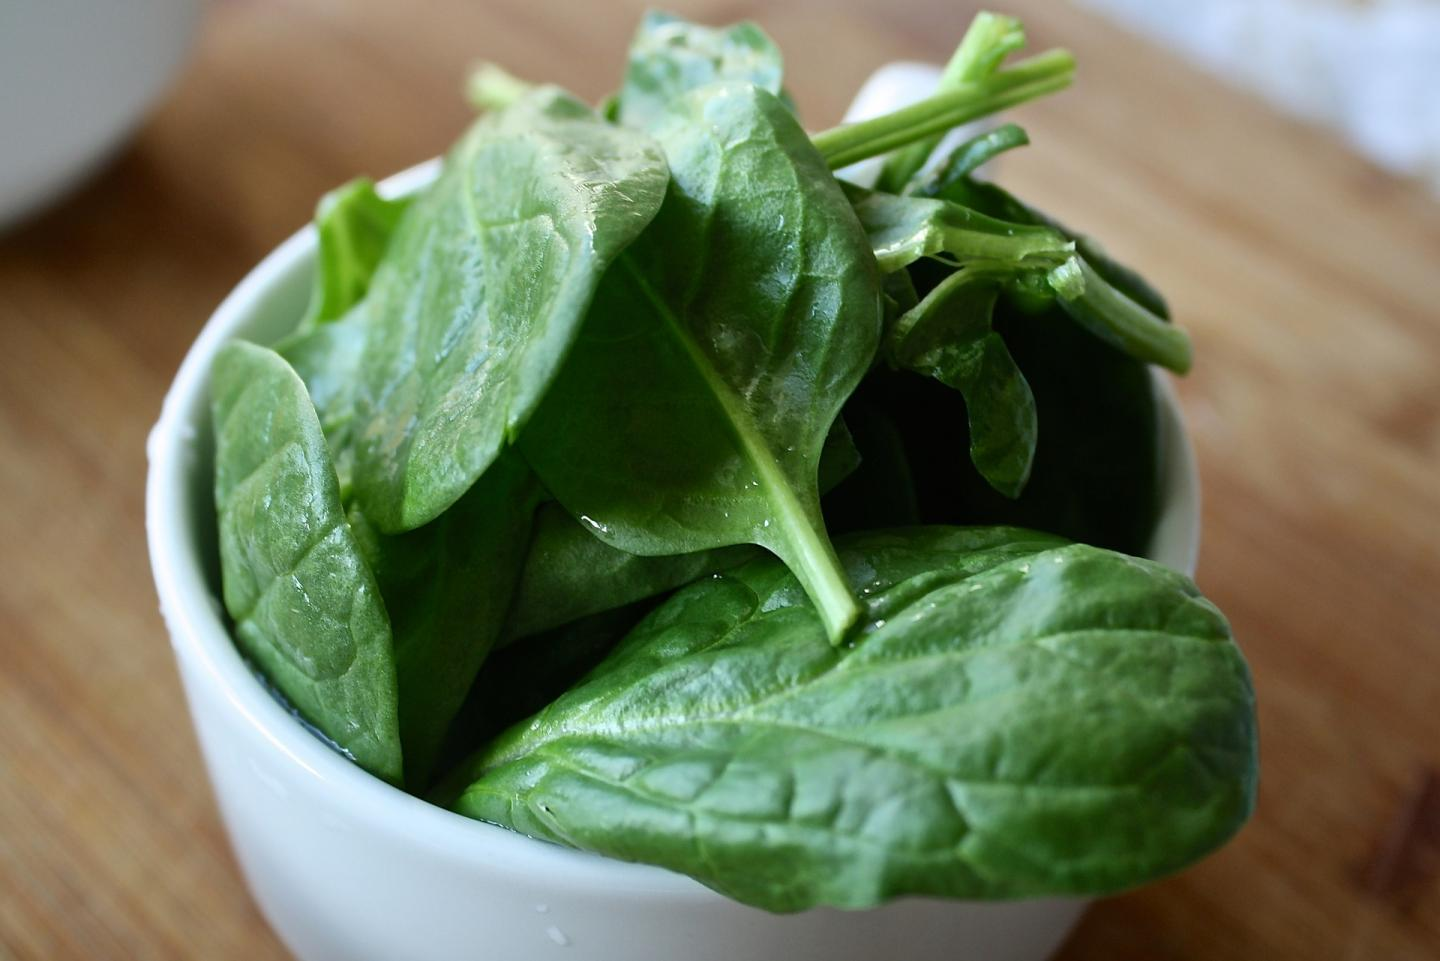 Cup of Spinach Leaves